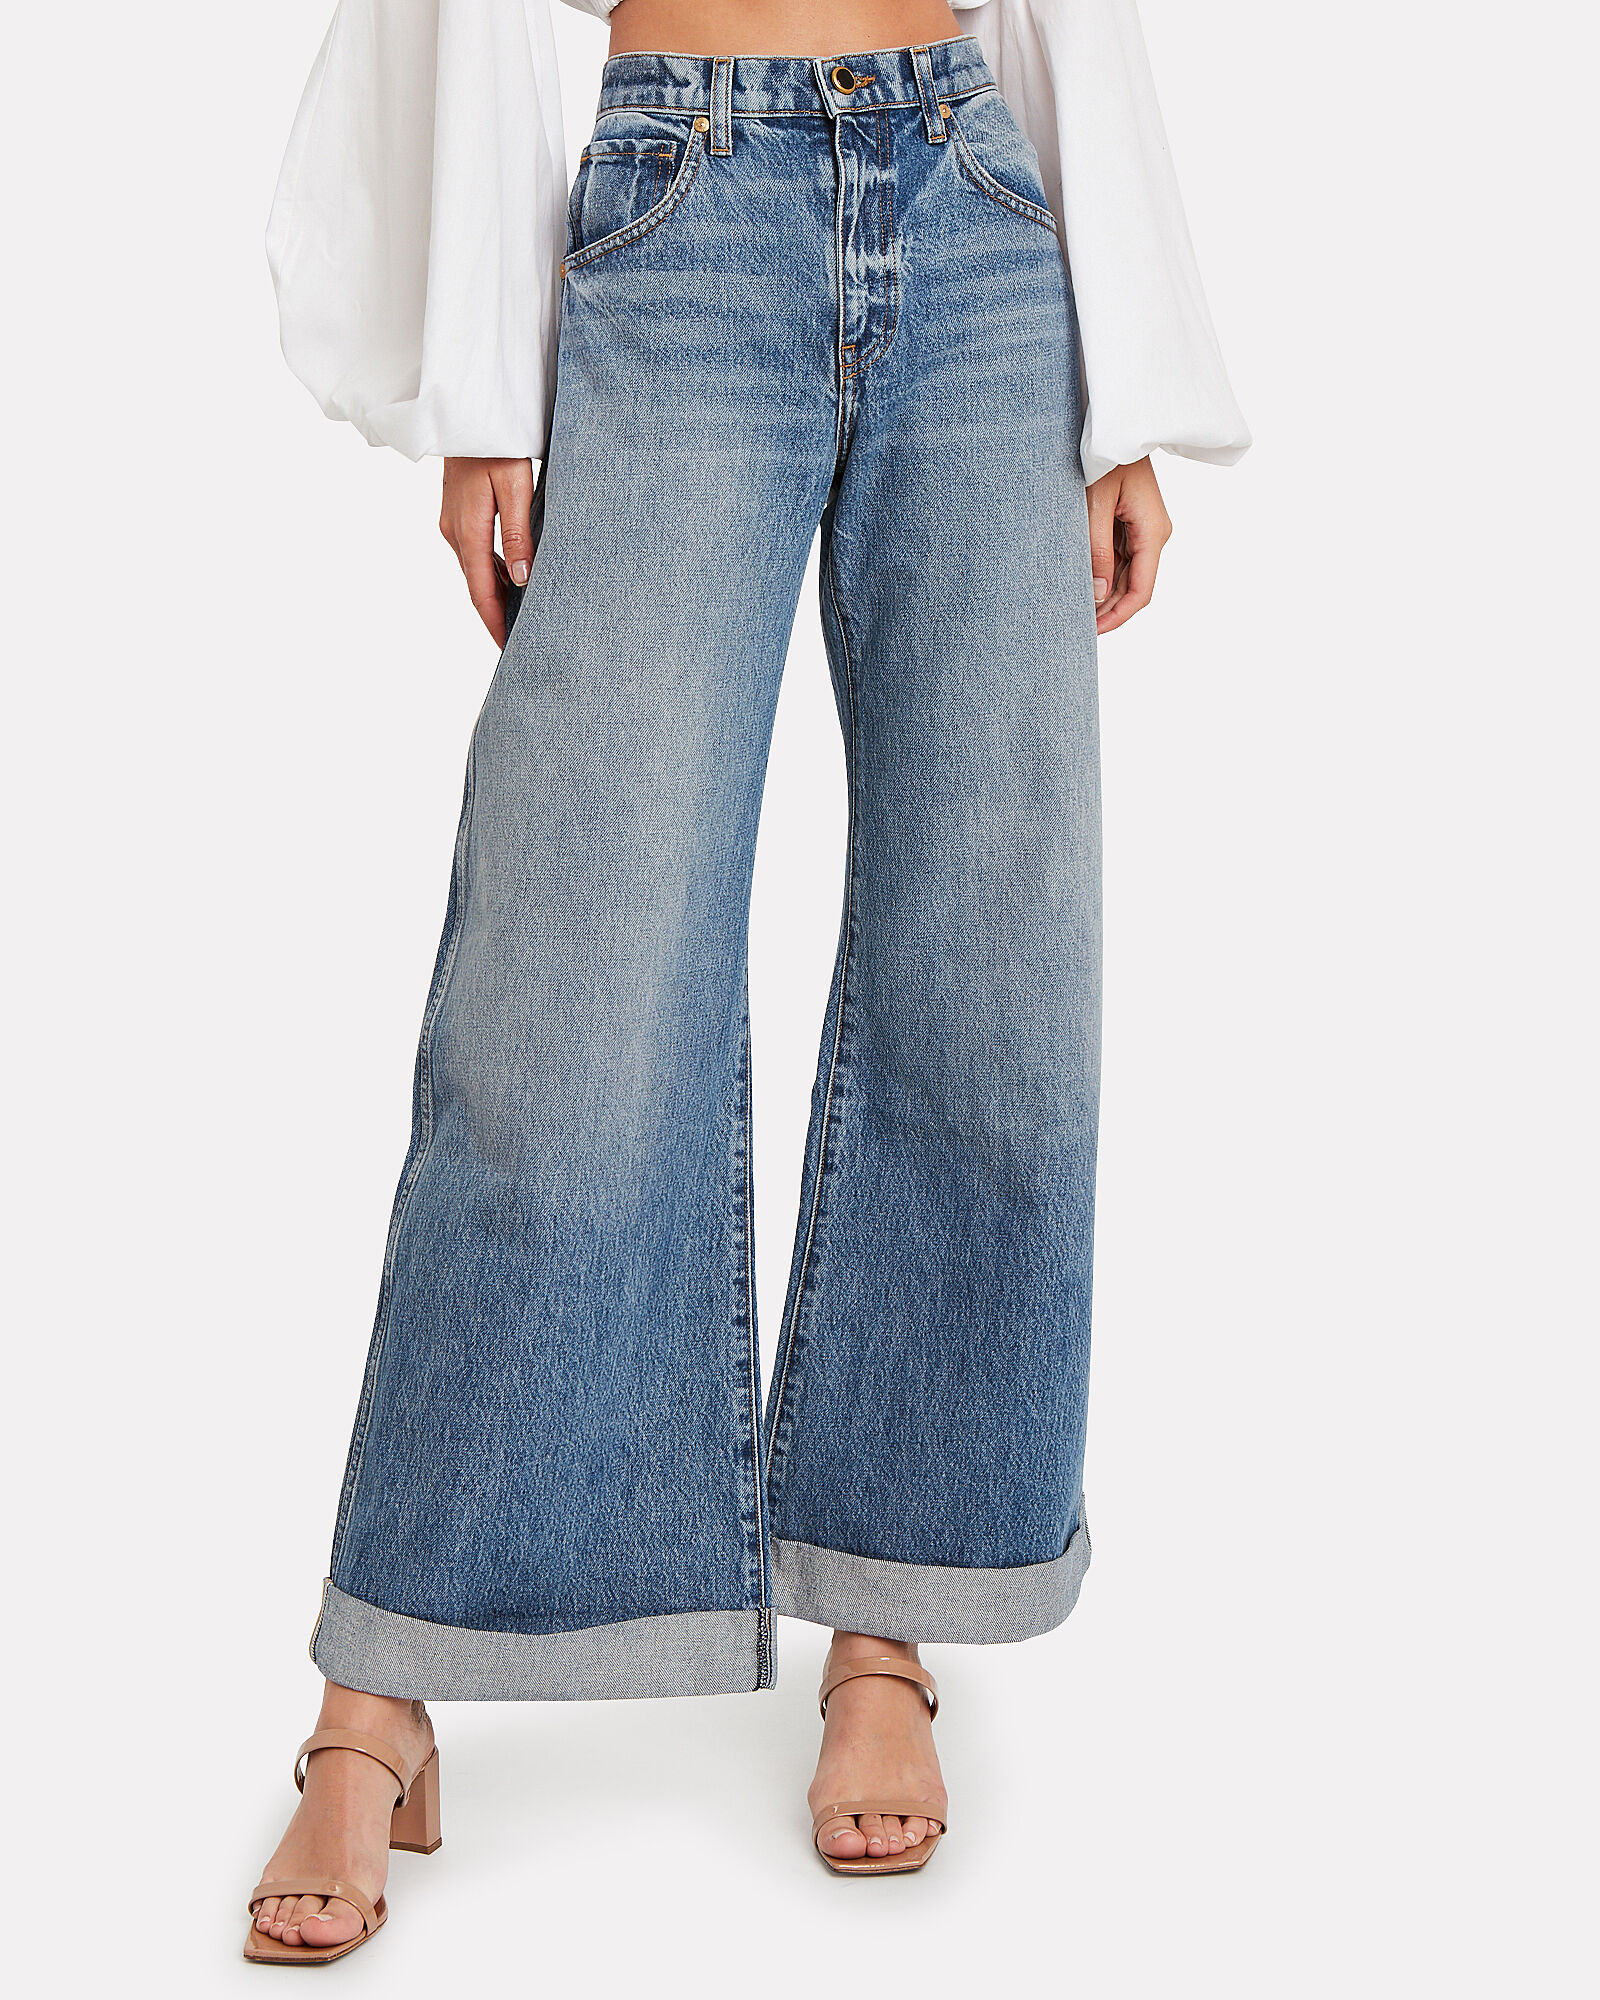 Noelle Wide Leg Jeans, DARK WASH DENIM, hi-res